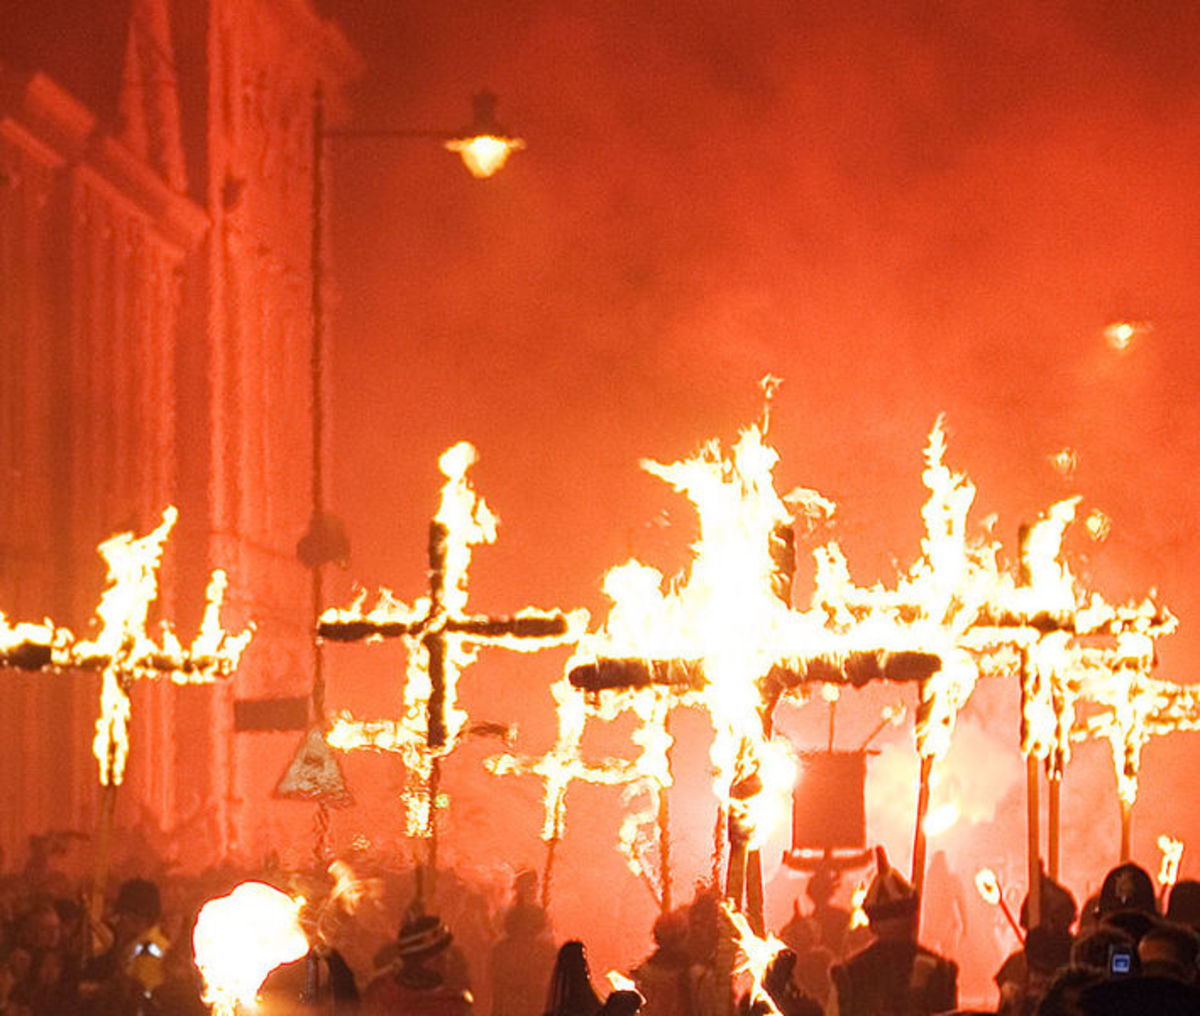 Lewes bonfire night - Martyrs Crosses courtesy of Wiki Commons